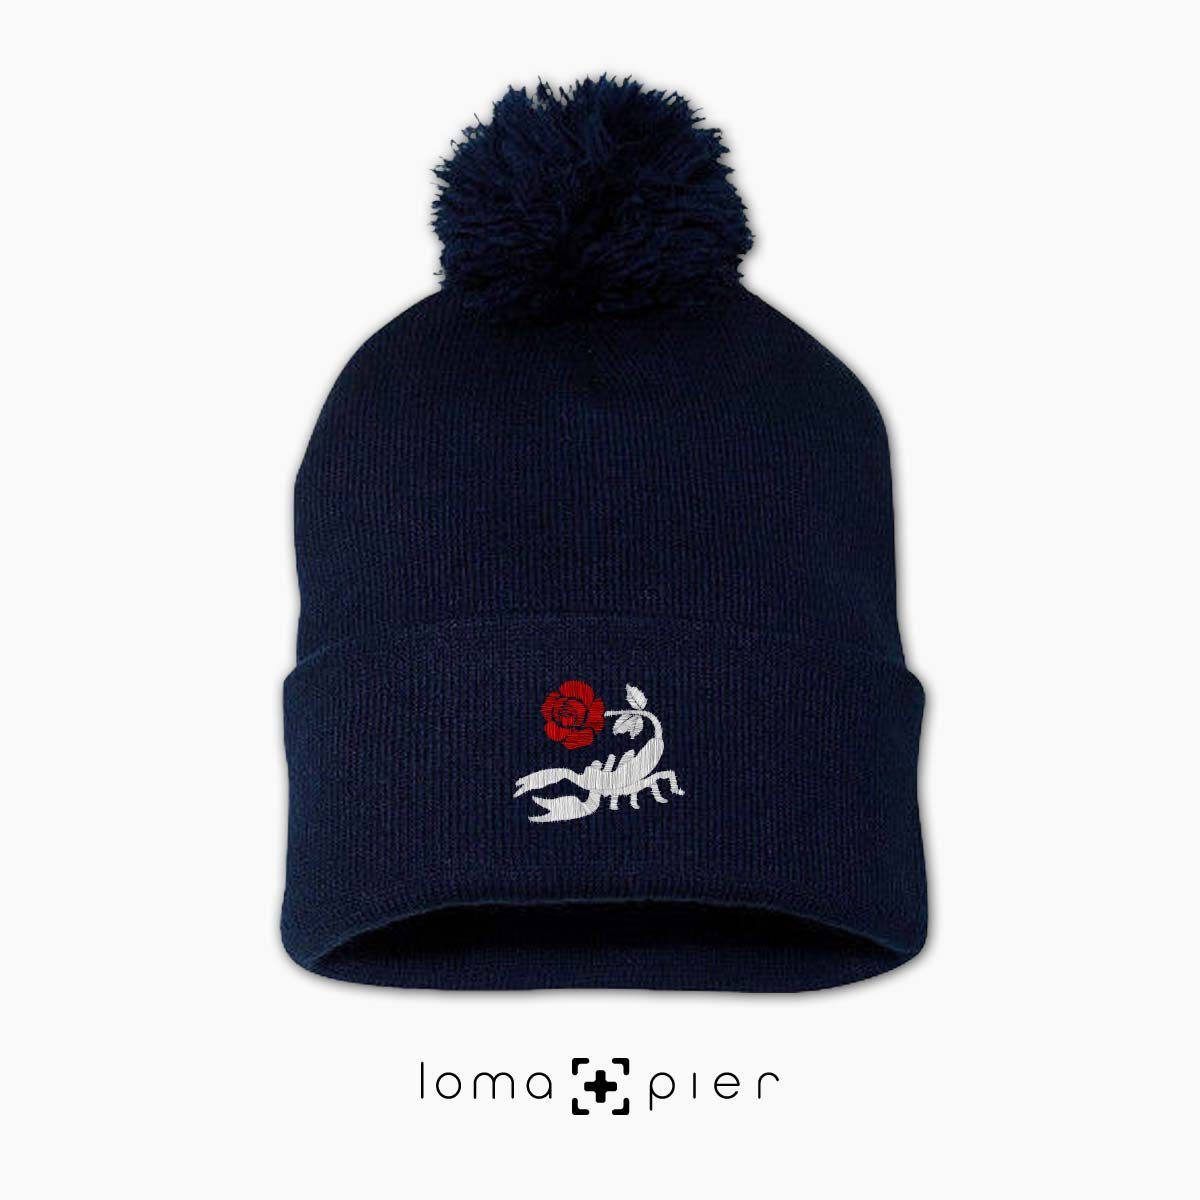 SCORPION ROSE icon embroidered on a navy blue pom pom beanie with multicolor thread by loma+pier hat store